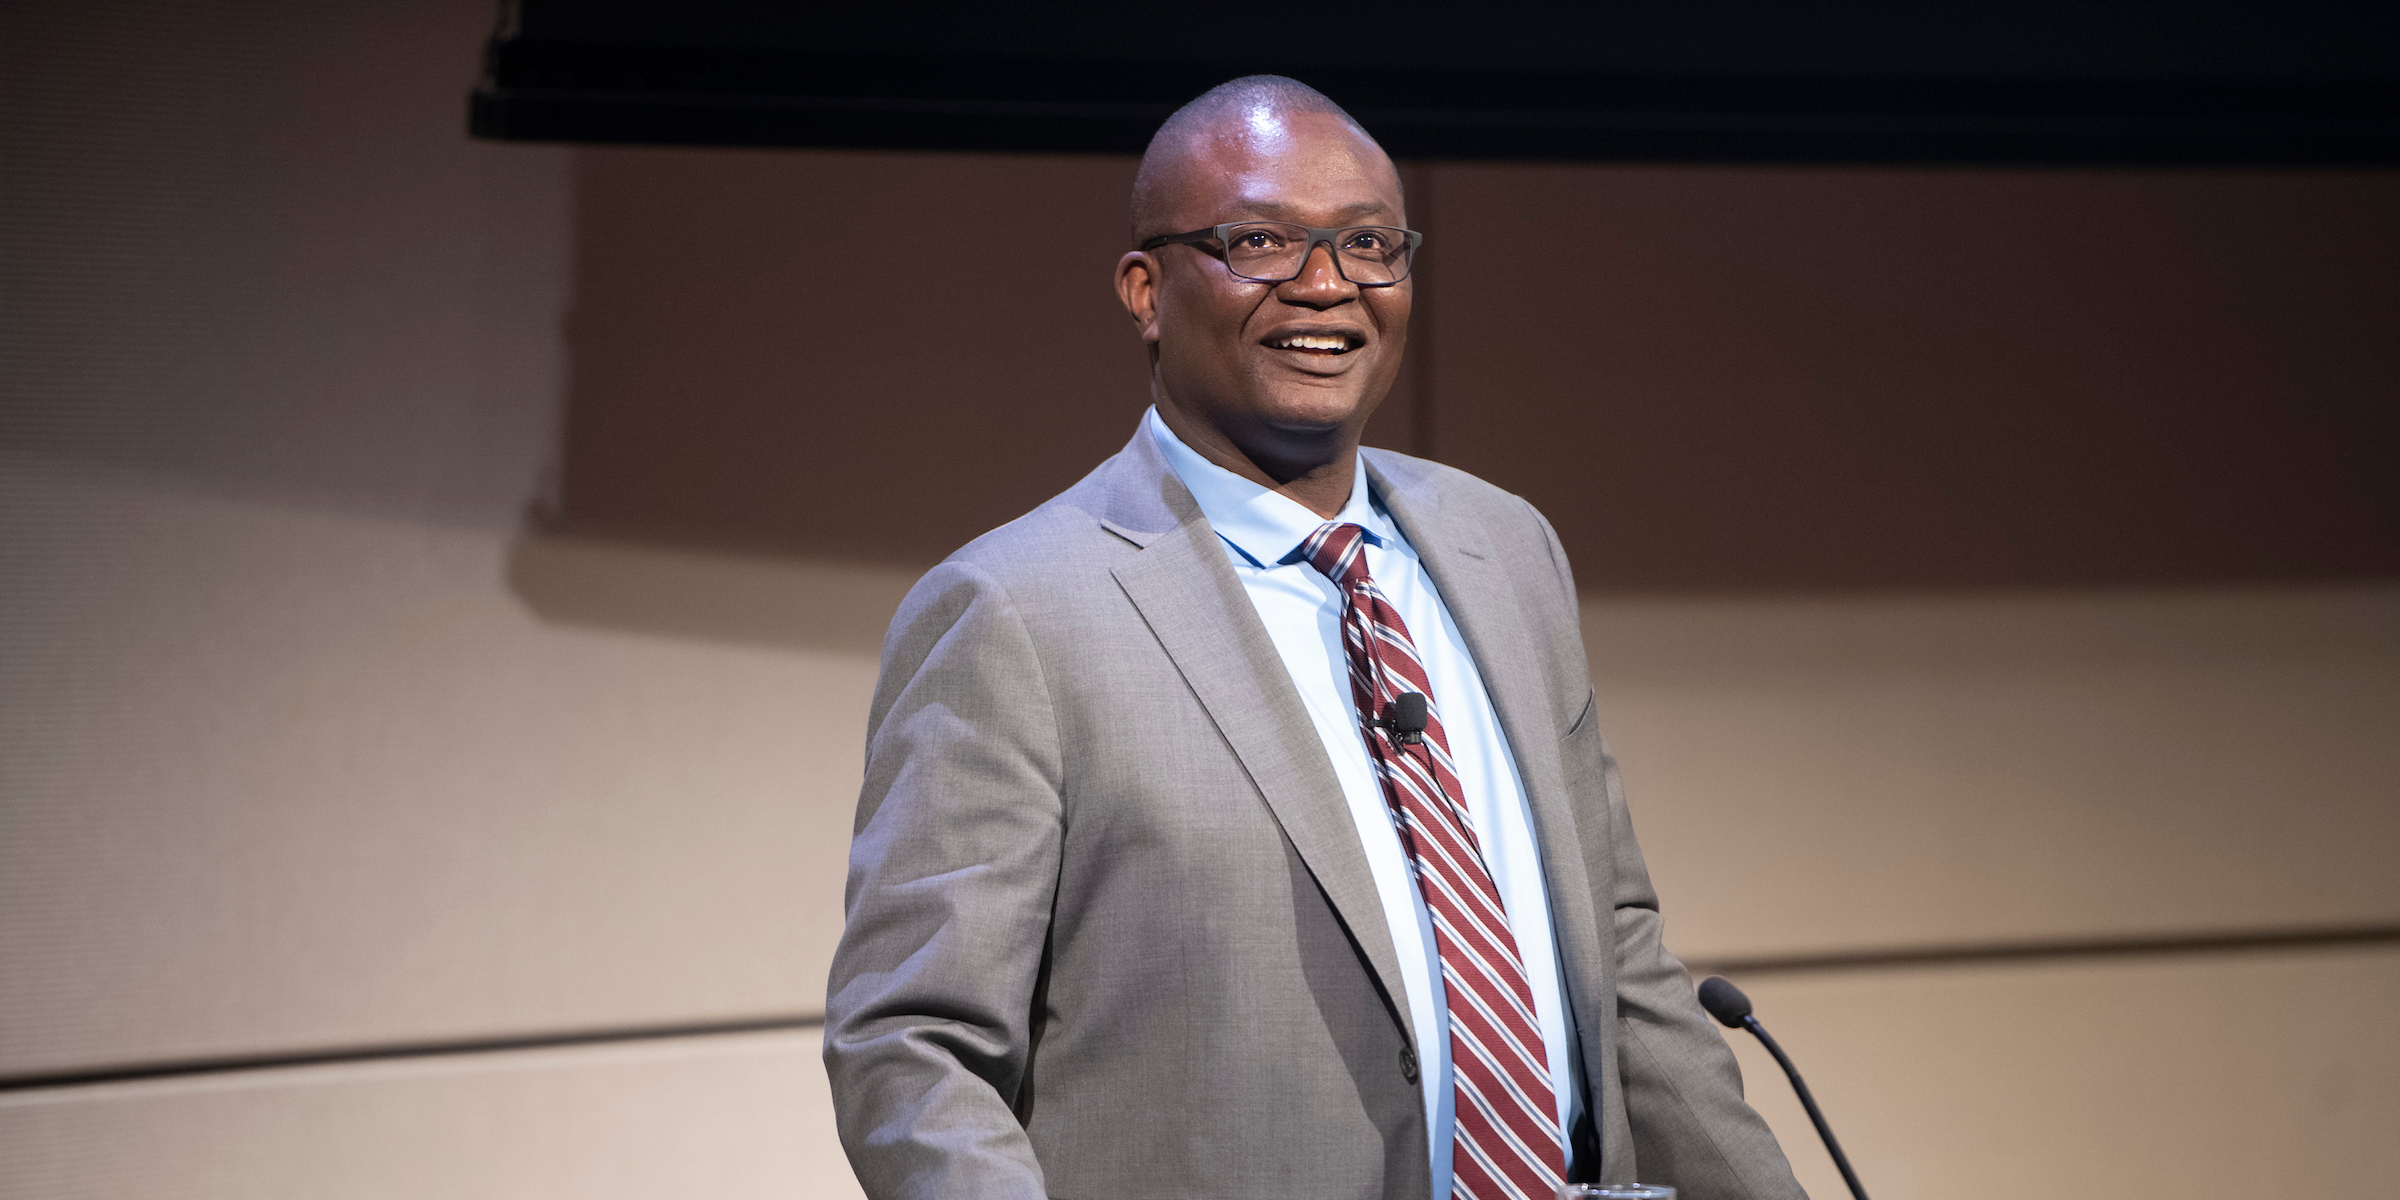 Cancelled - Dean Kerwin K. Charles Alumni Reception in Chicago